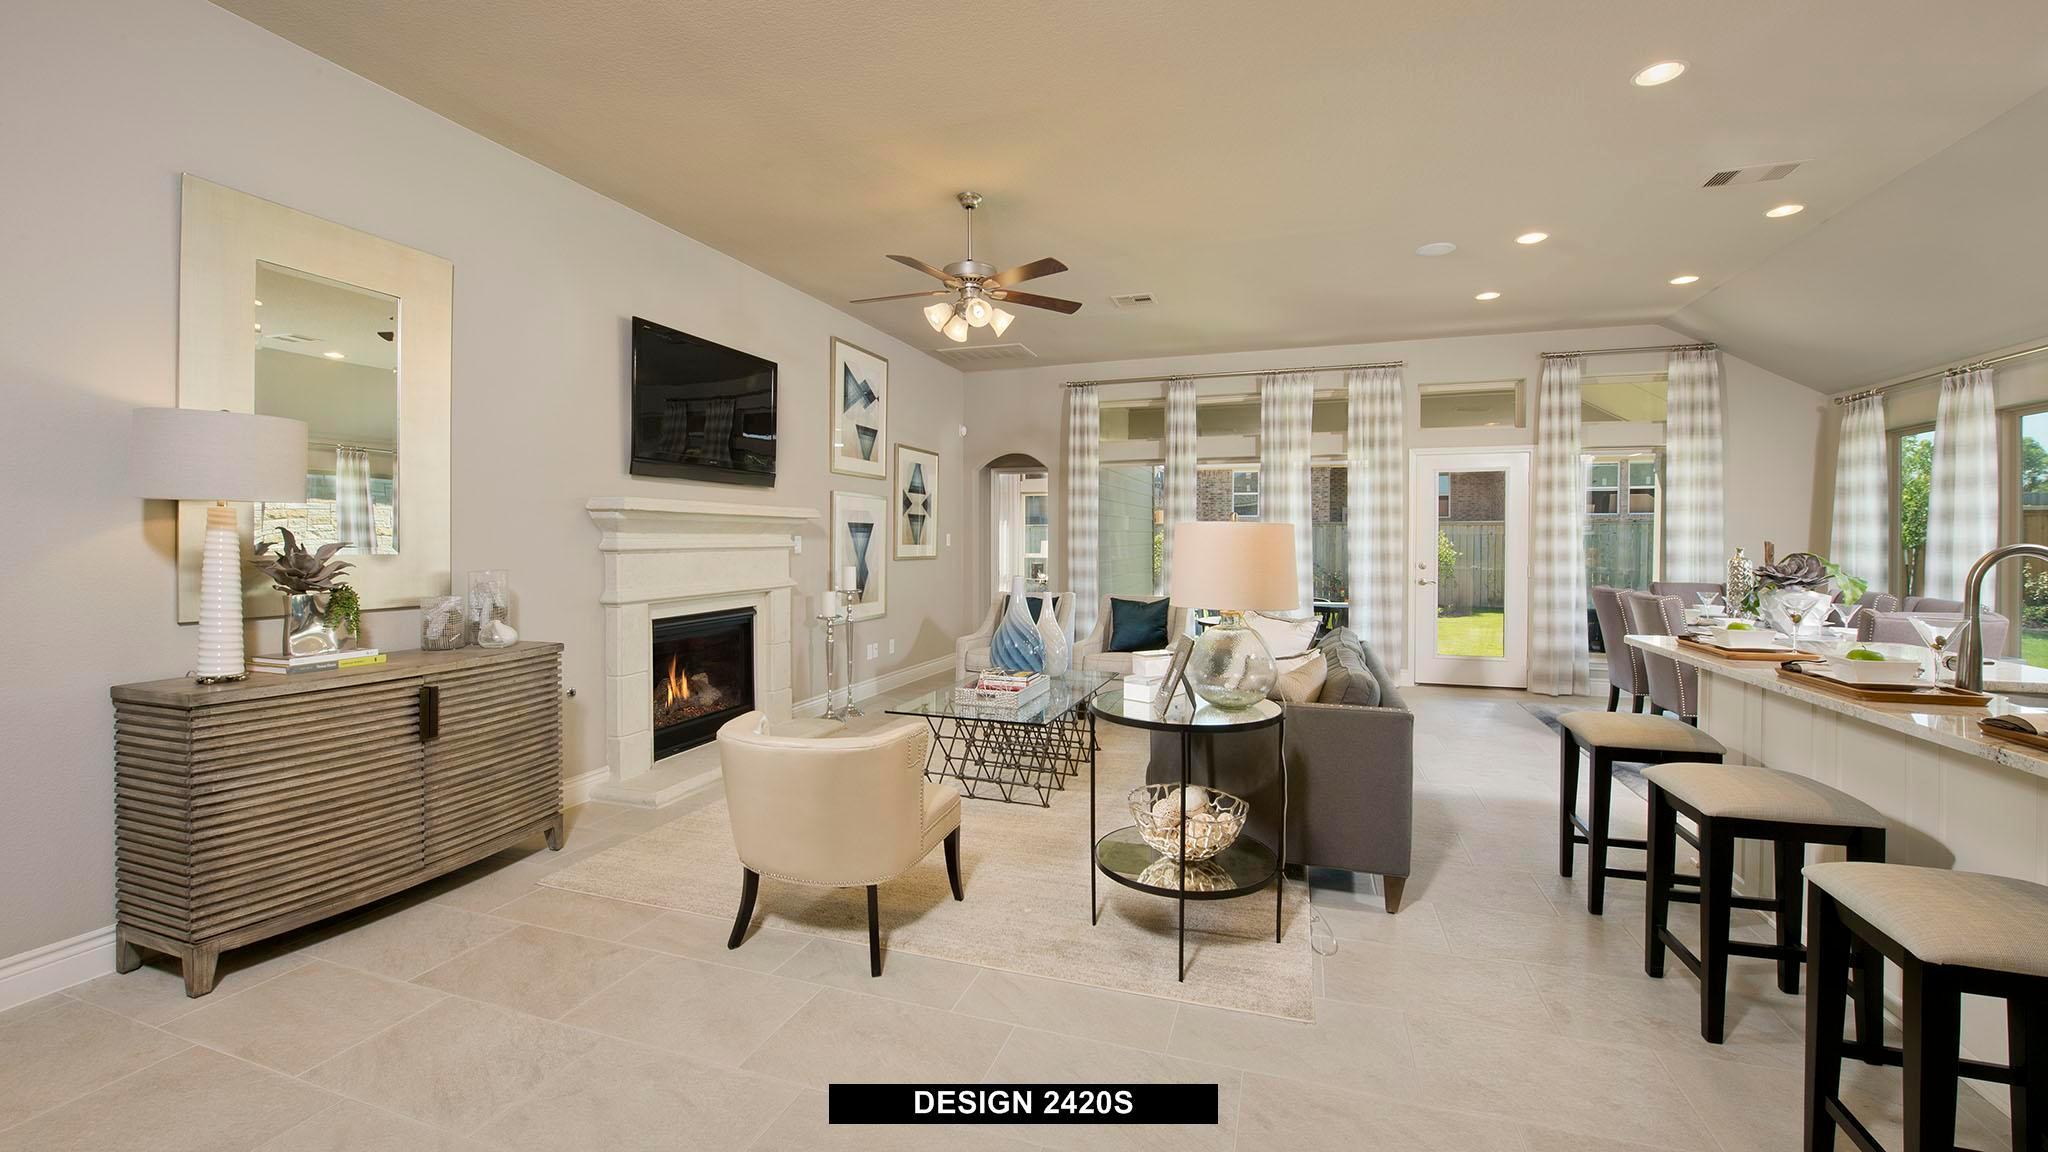 Living Area featured in the 2420S By Perry Homes in Austin, TX